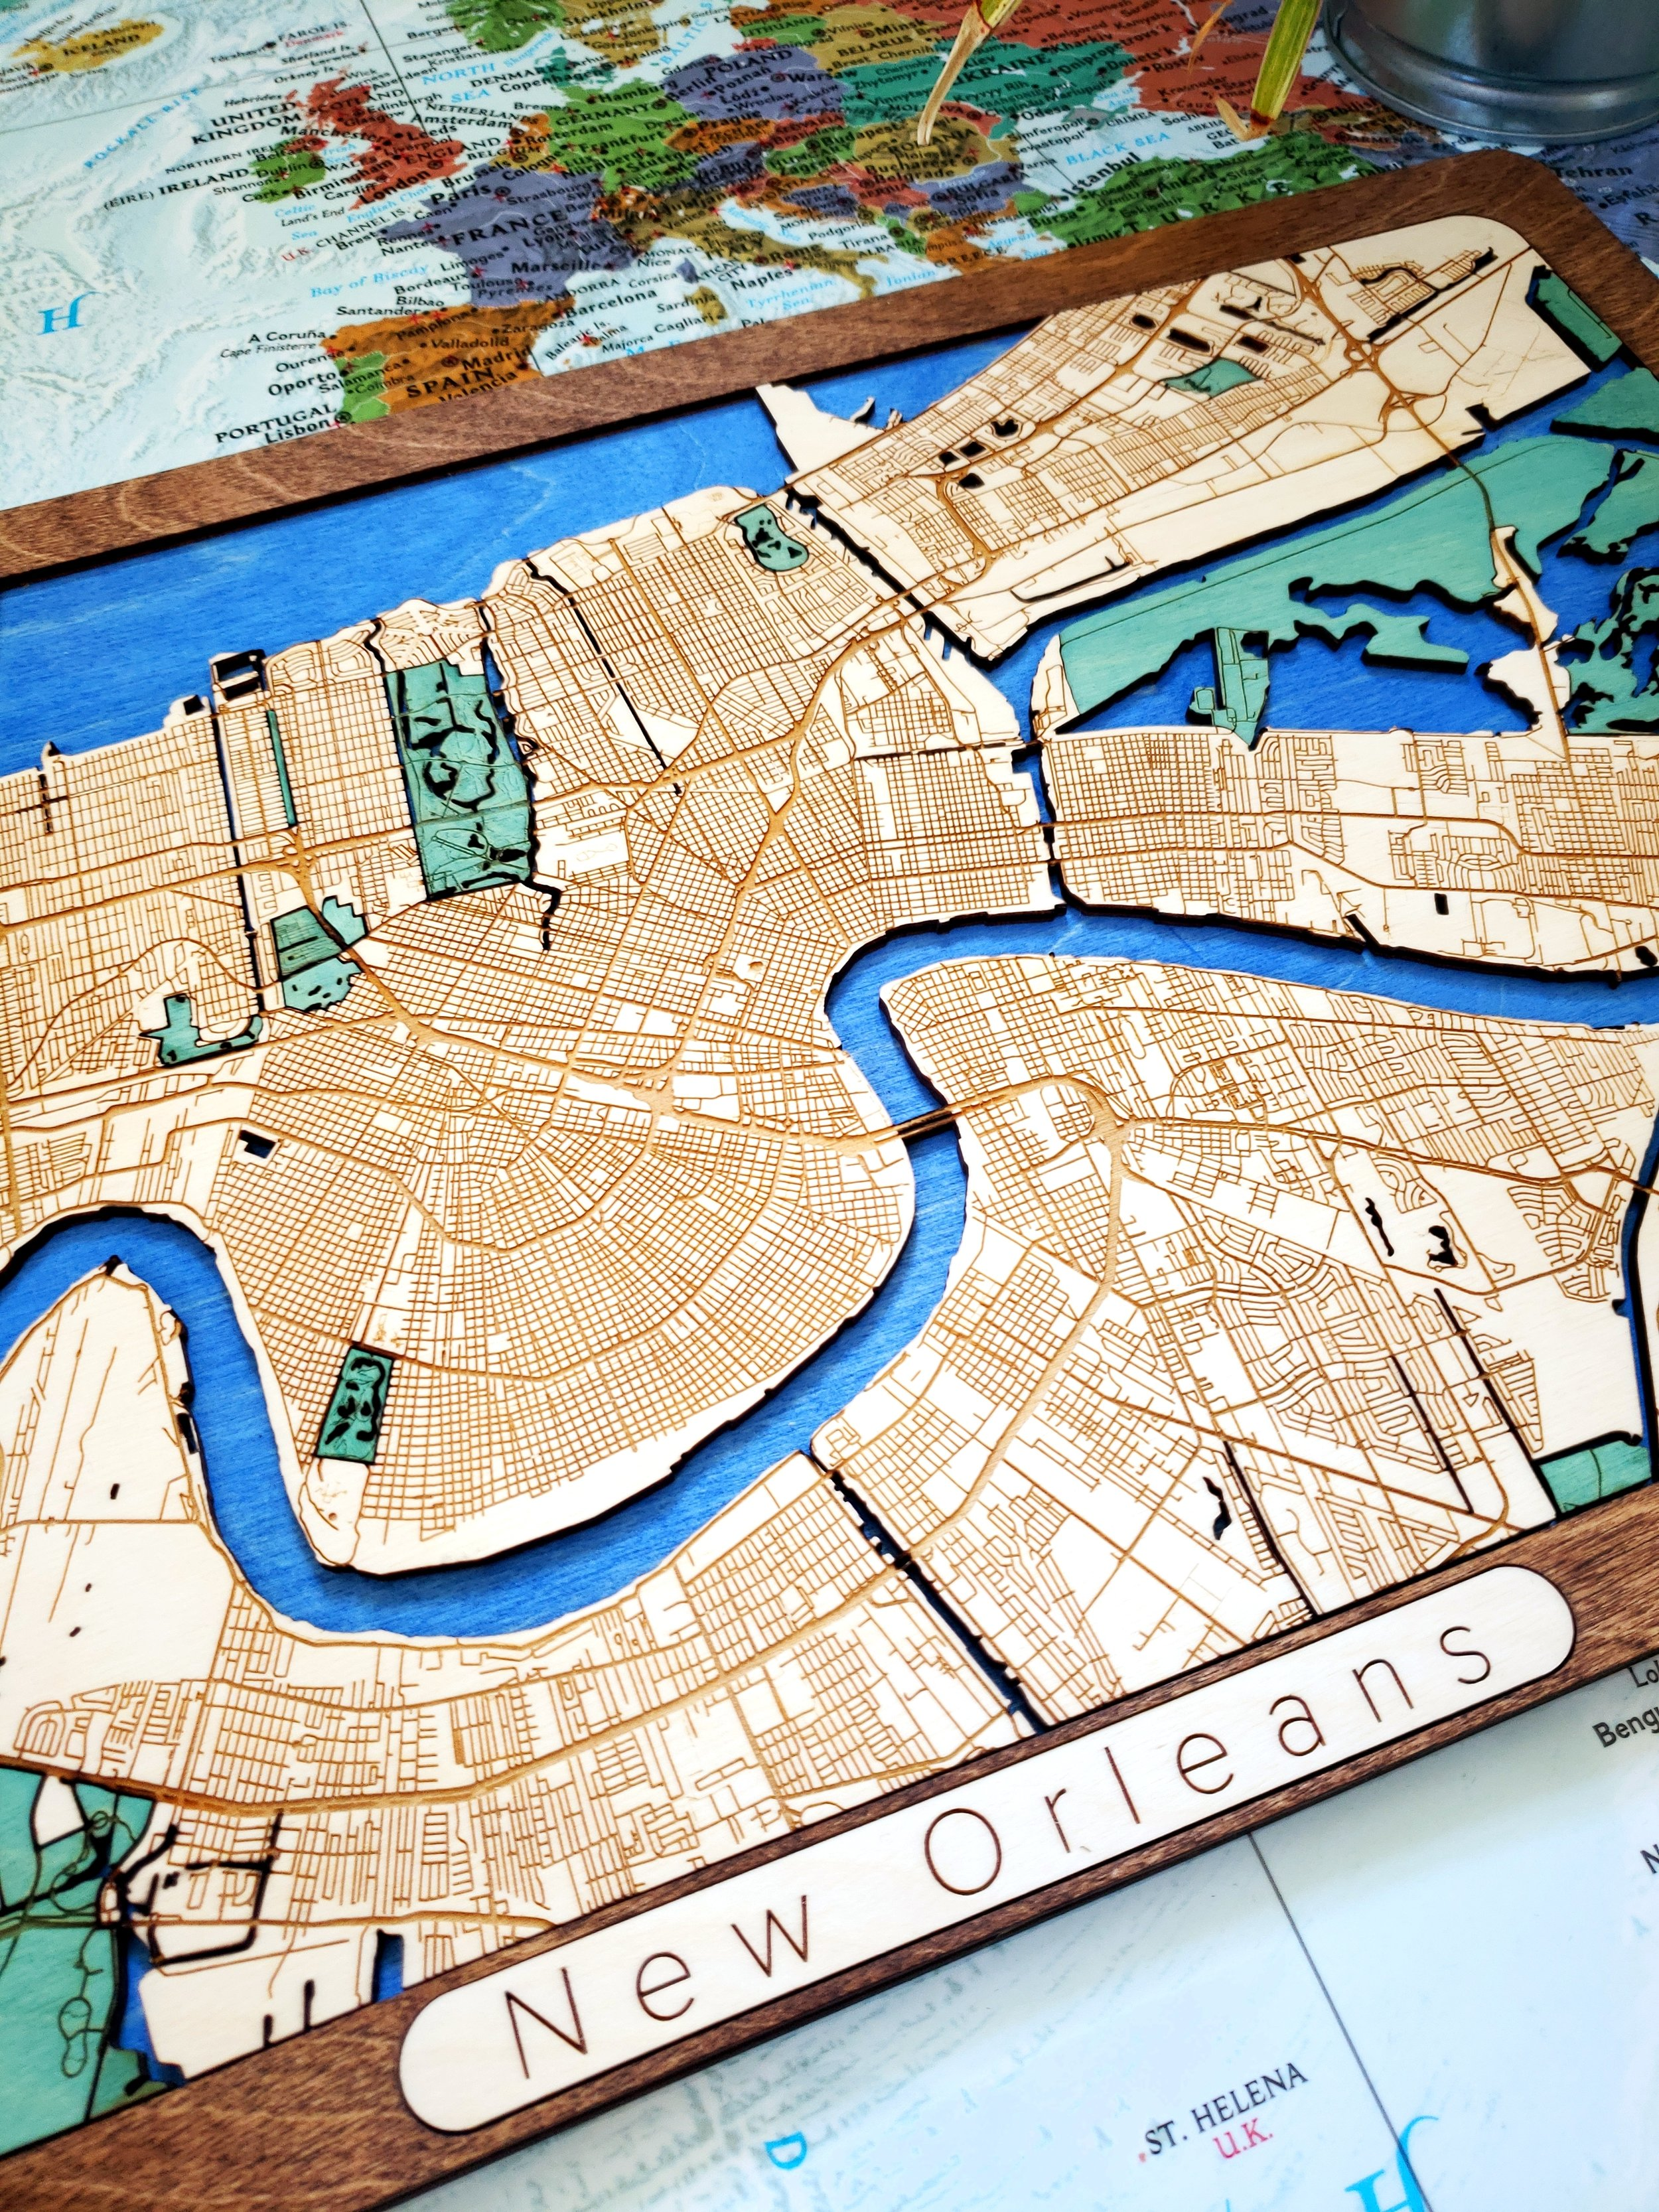 New Orleans Wooden Map, Custom Wooden Maps, Custom Wooden Map, Wooden Maps, Wood Map, New Orleans gift, New Orleans unique gift, Map gifts, world wooden map